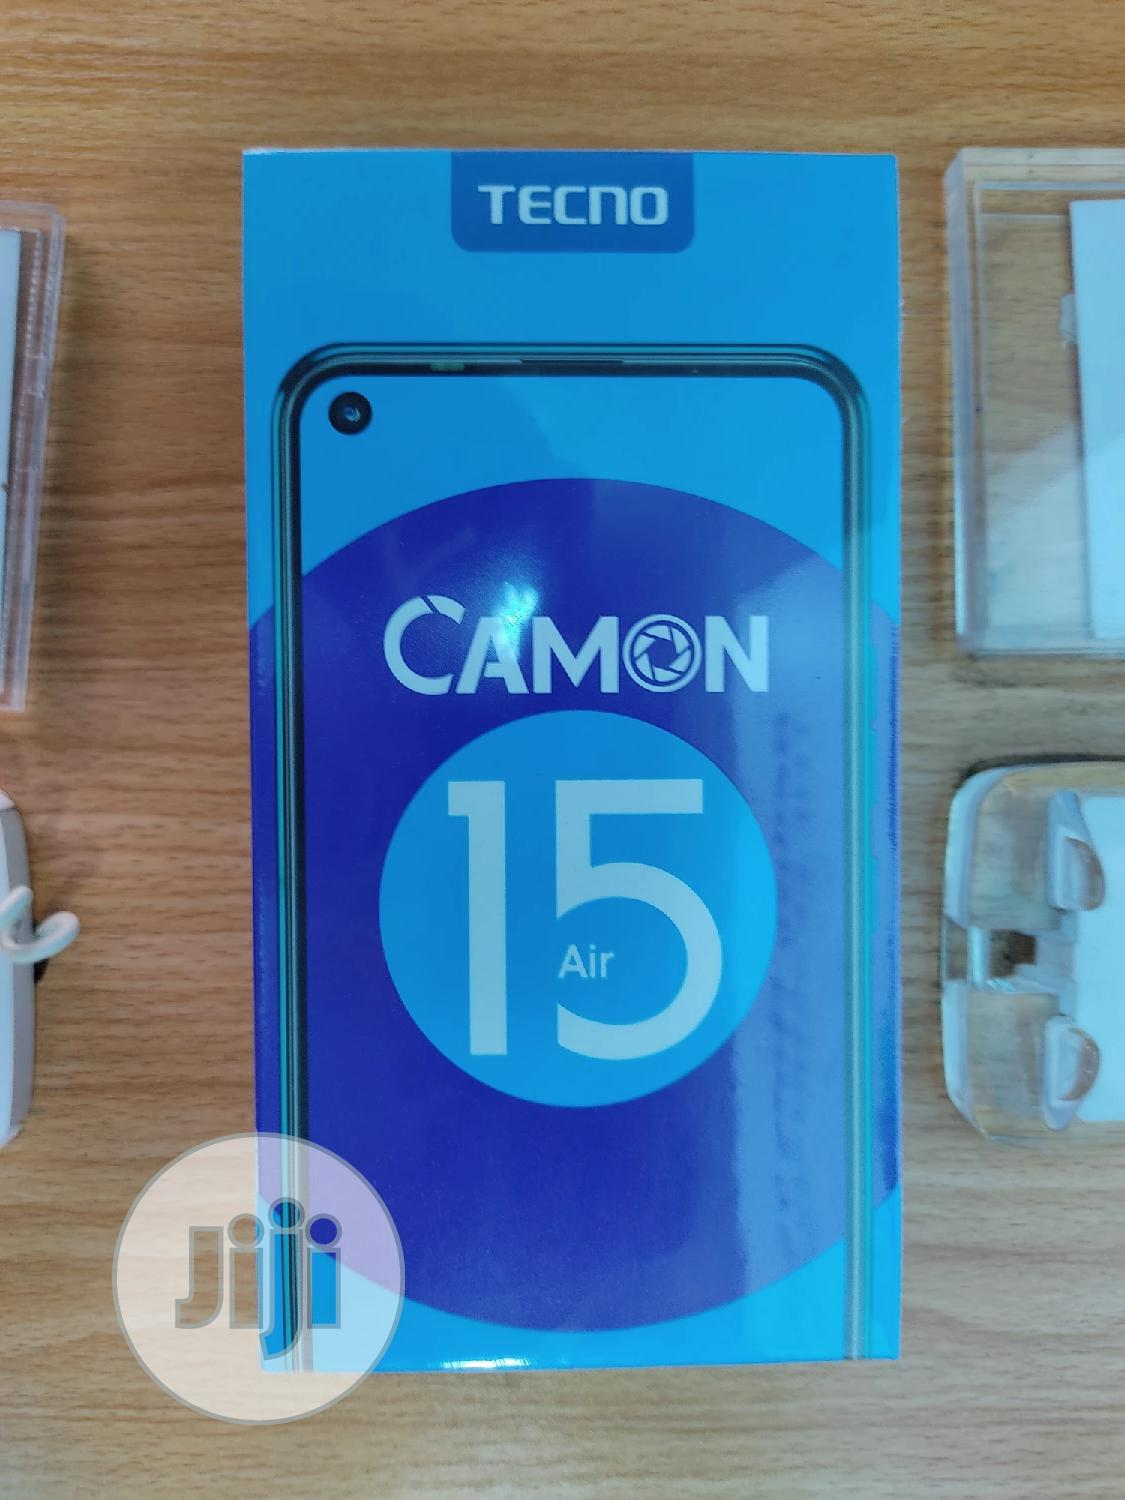 New Tecno Camon 15 Air 64 GB Gray | Mobile Phones for sale in Ikeja, Lagos State, Nigeria